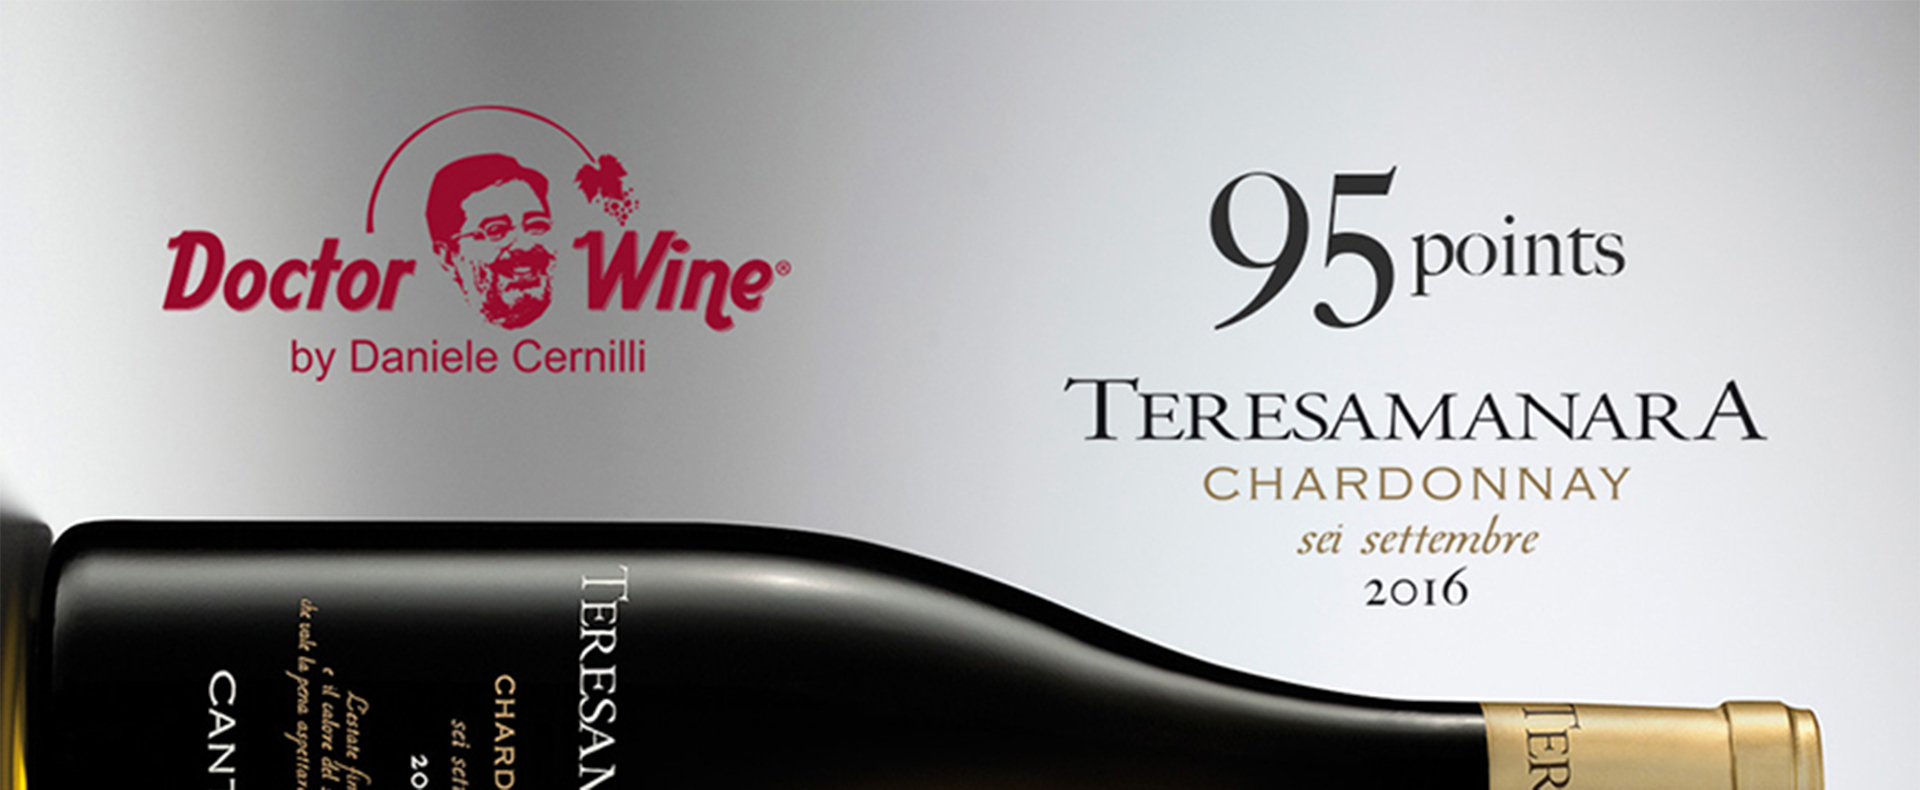 95 points for Teresa Manara Chardonnay from Daniele Cernilli and Doctor Wine!